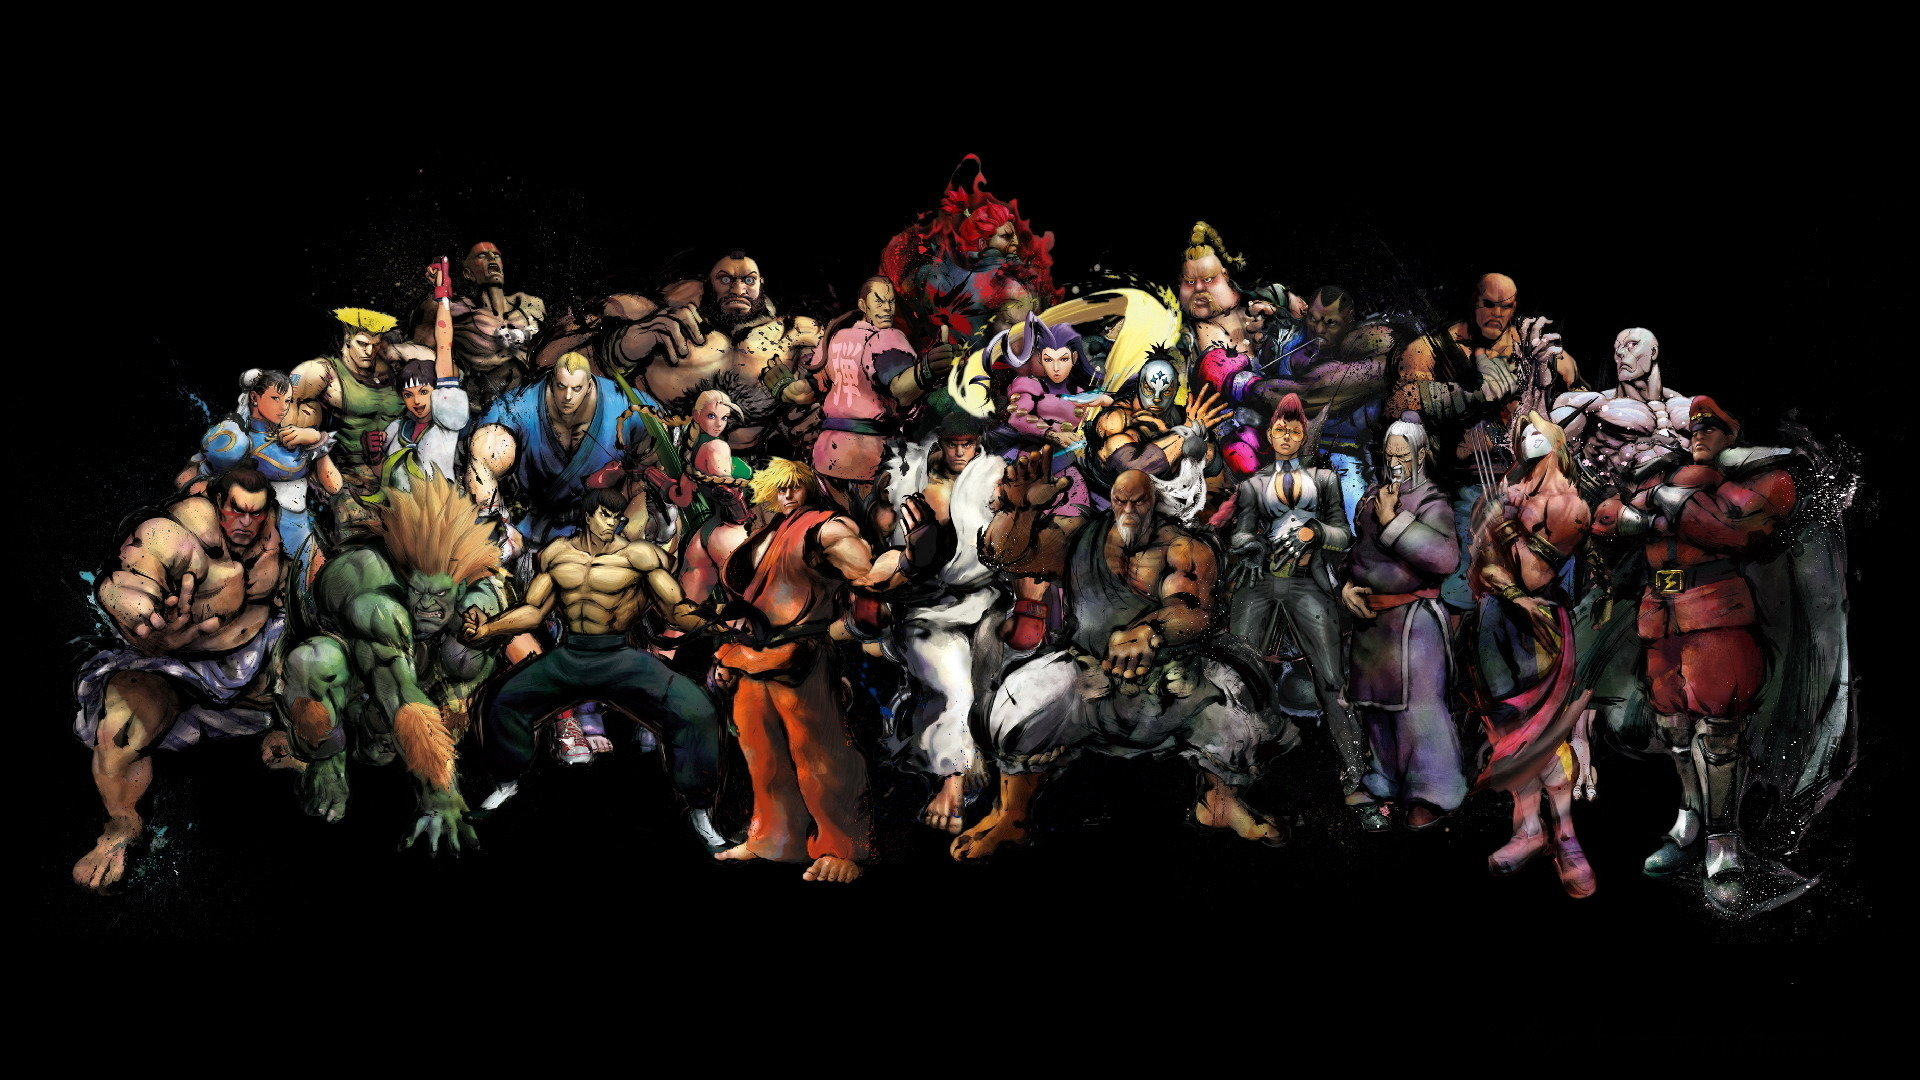 Street Fighter Wallpapers 1920x1080 Full Hd 1080p Desktop